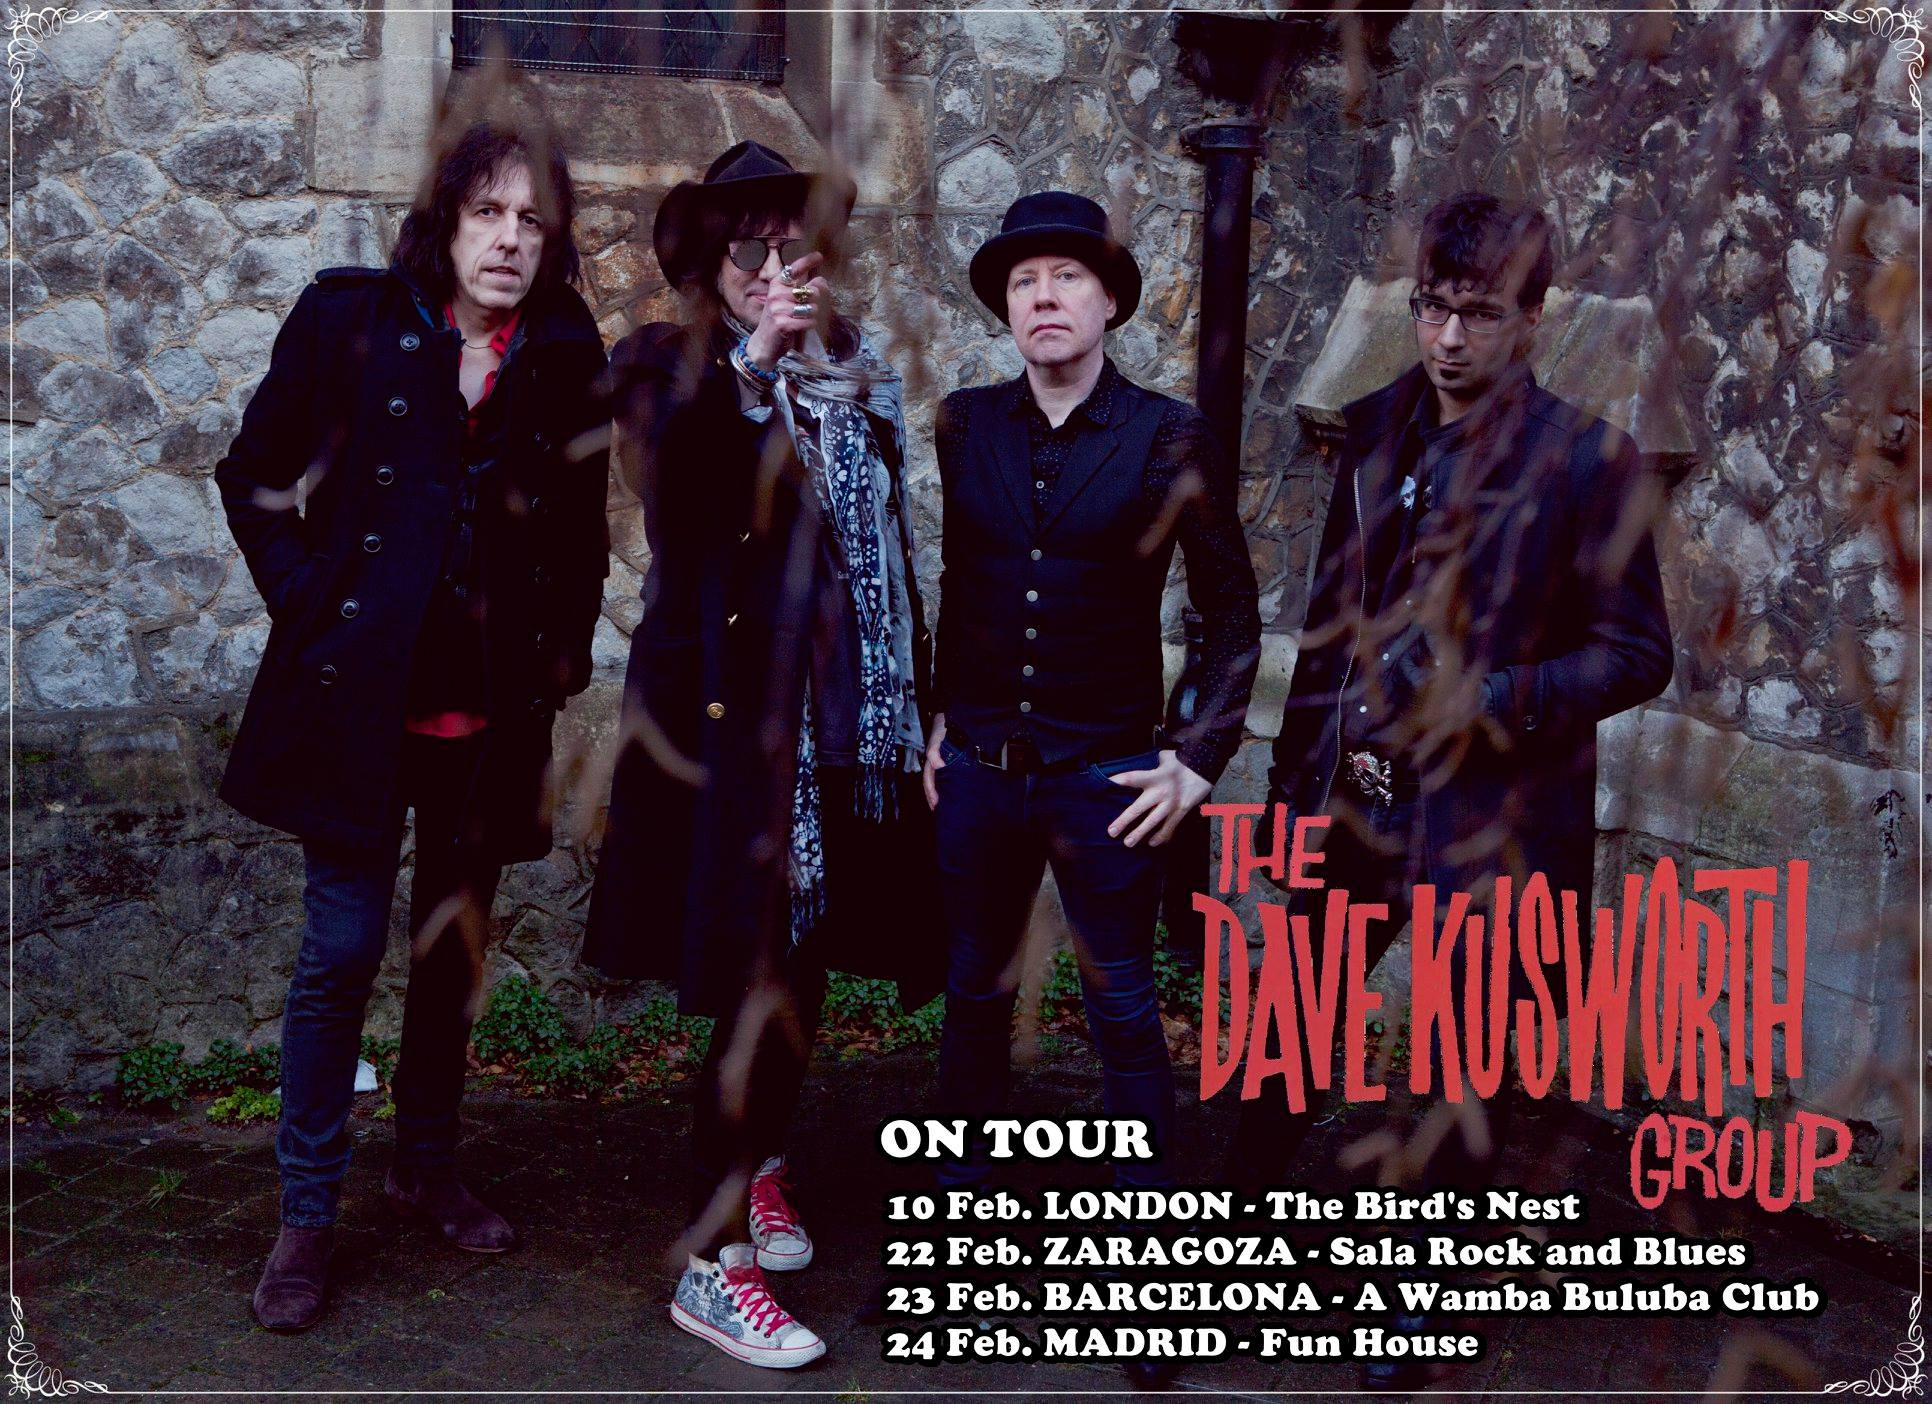 Dave Kusworth Band